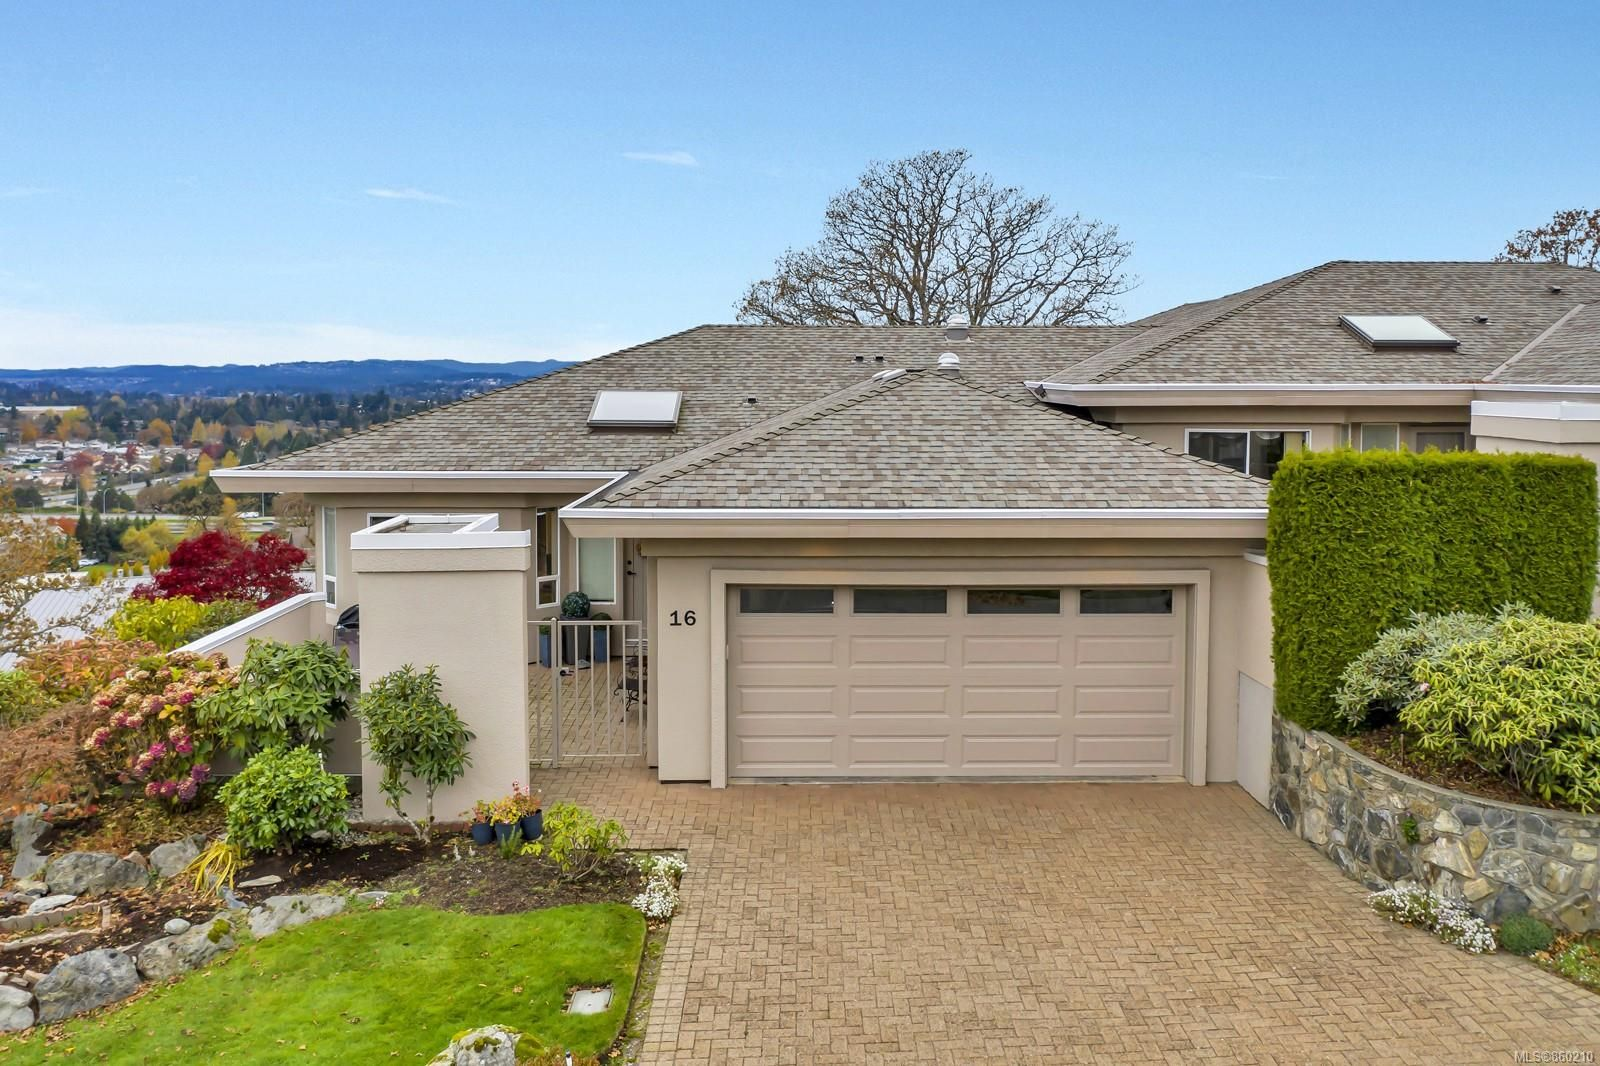 Main Photo: 16 881 Nicholson St in : SE High Quadra Row/Townhouse for sale (Saanich East)  : MLS®# 860210